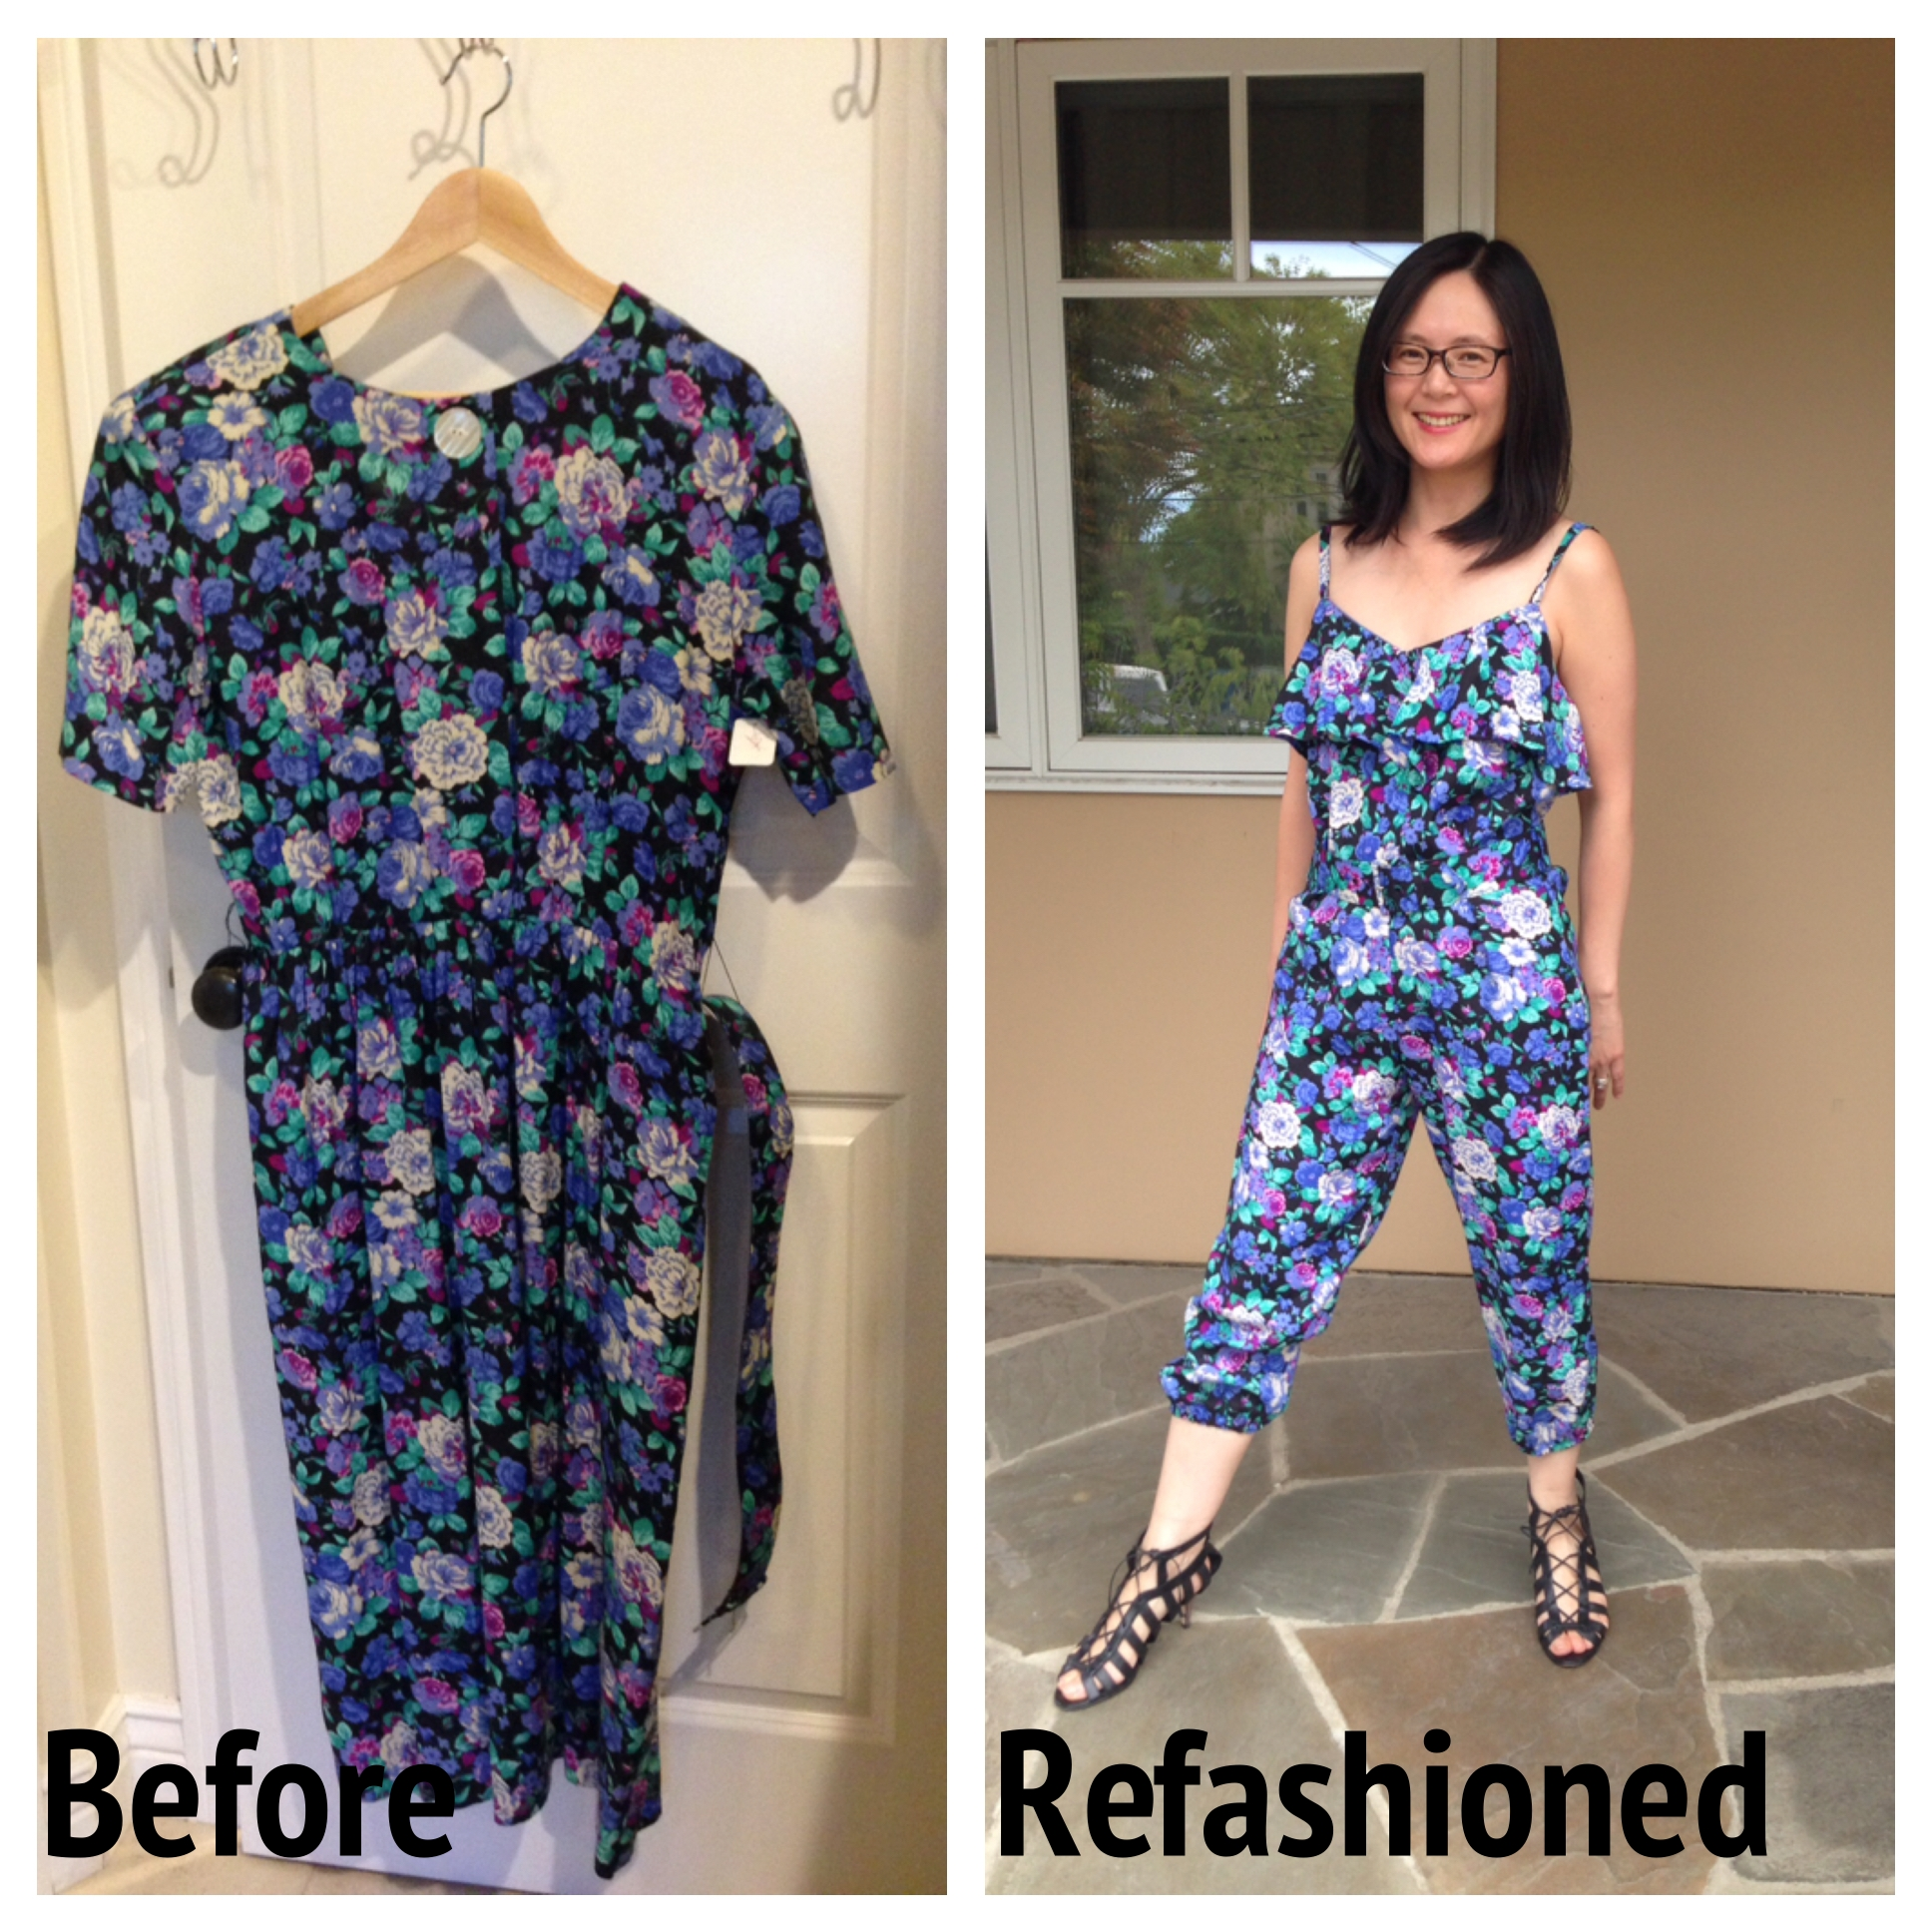 Refashion: Frumpy Floral Dress to Strappy Summer Jumpsuit ...